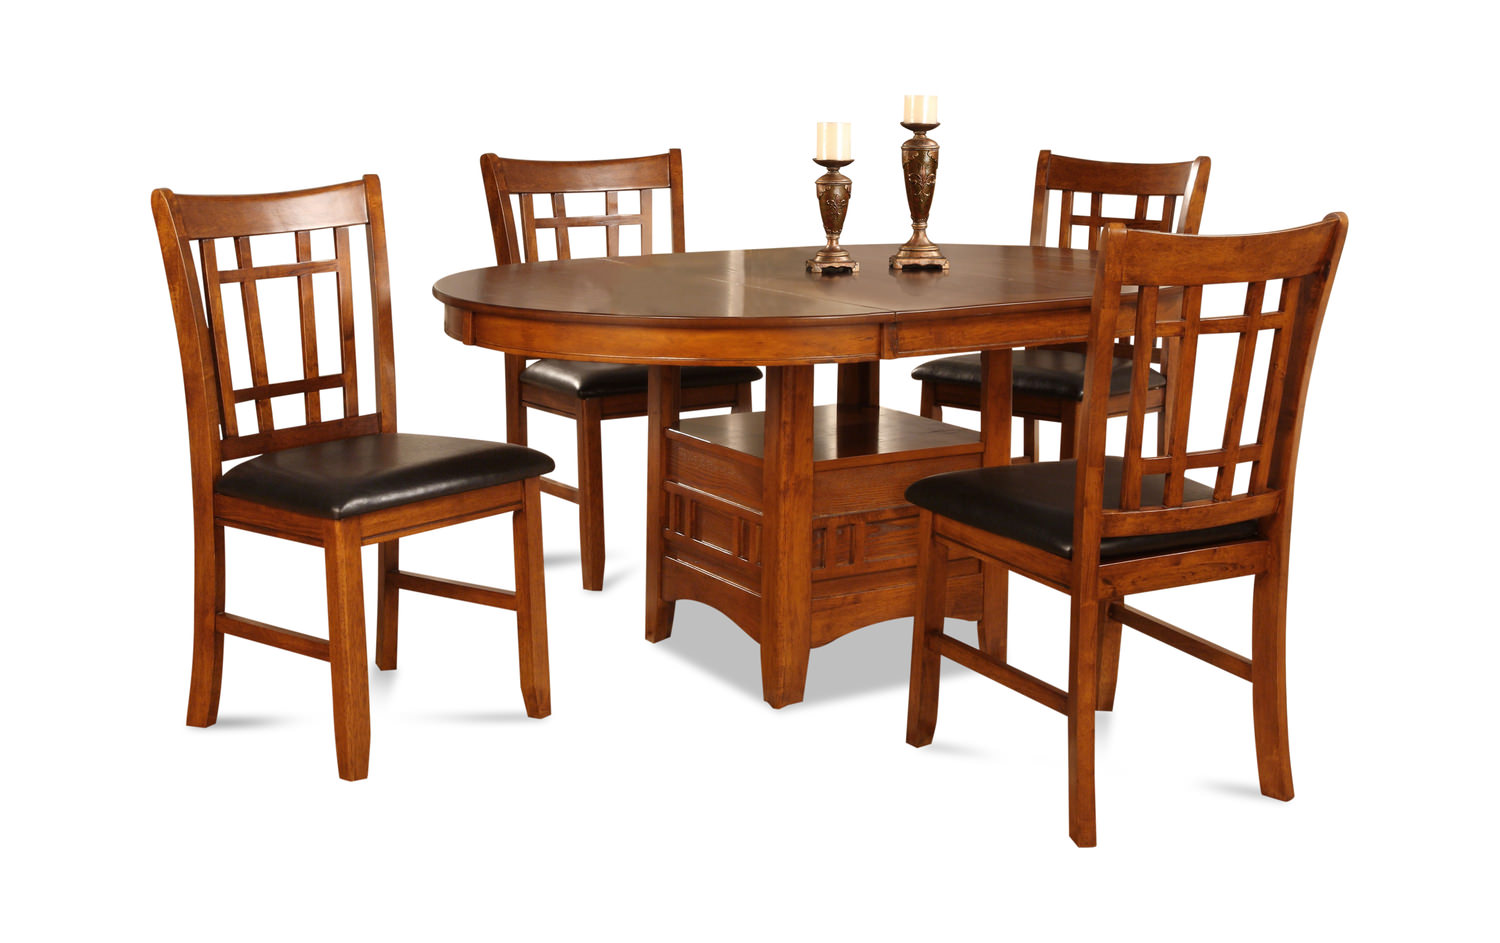 dining sets kitchen dining room sets hom furniture reg 799